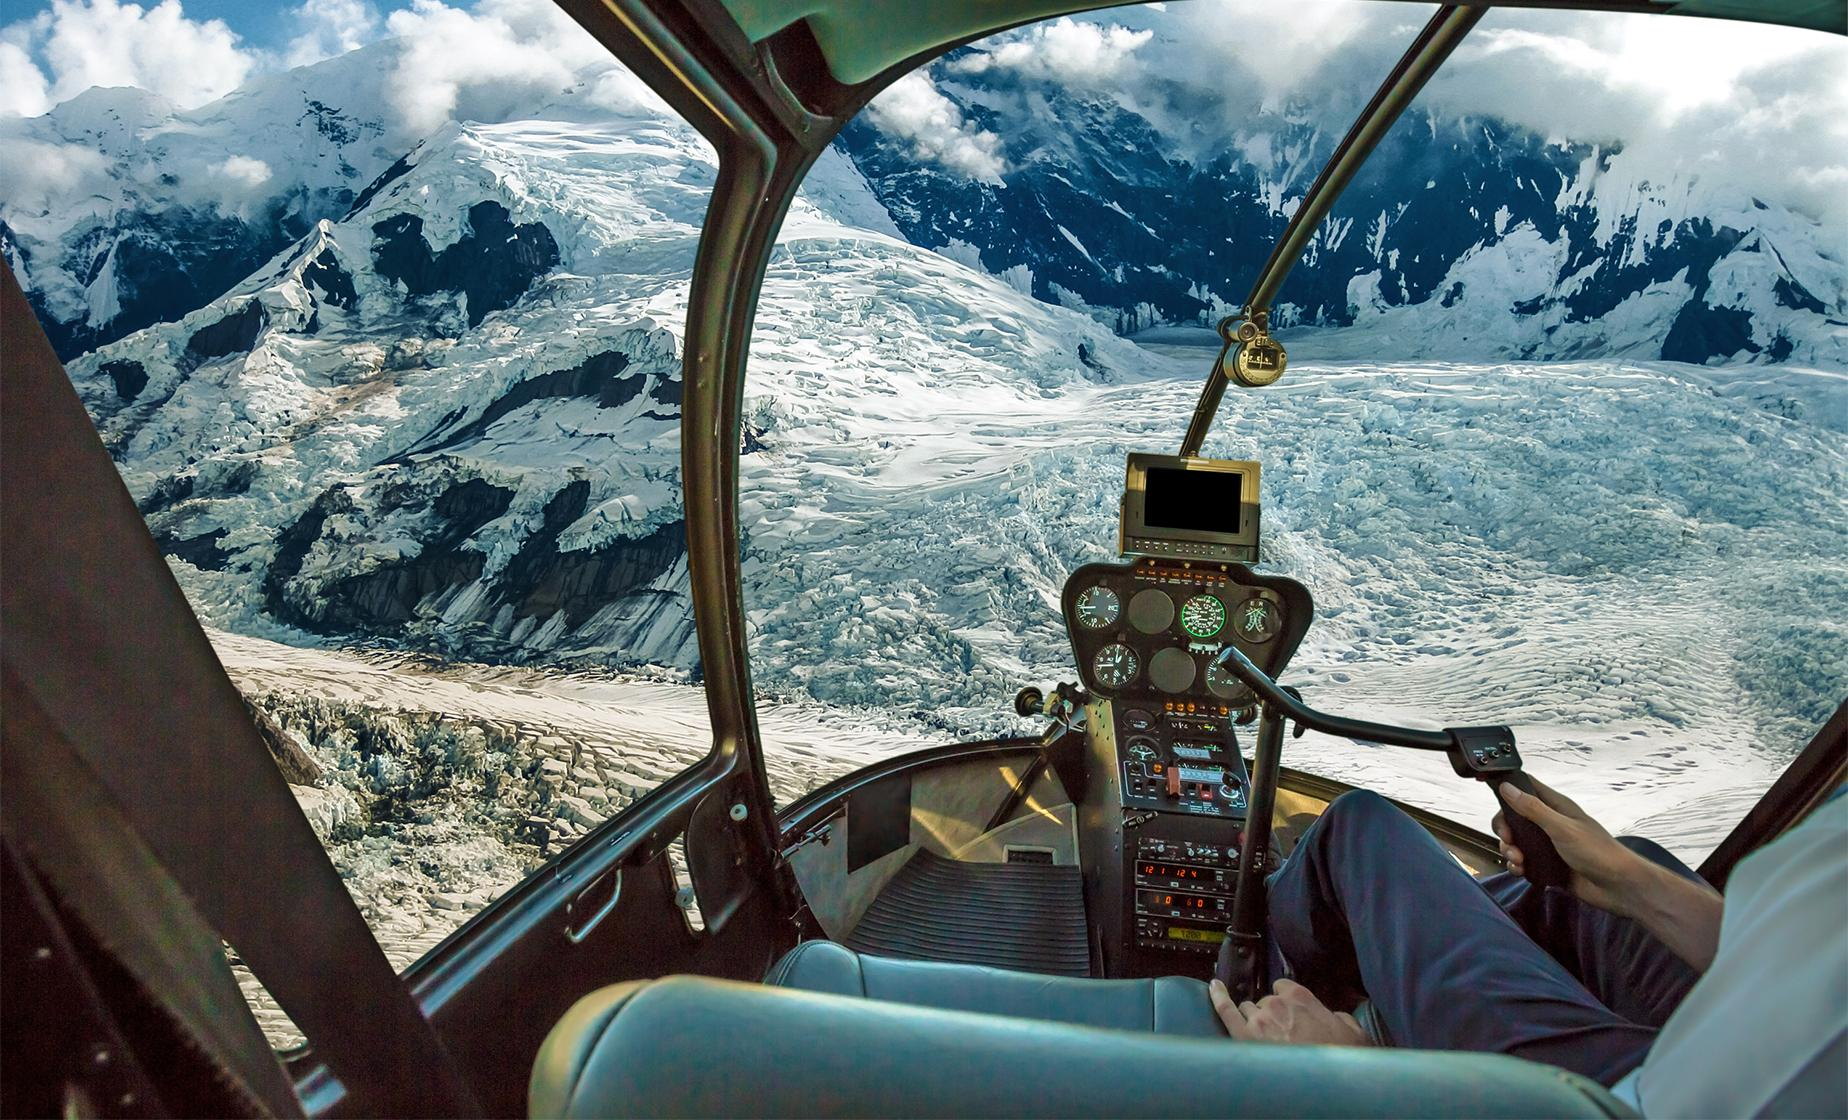 Helicopter Day Tour over the Alaska Mountain Range in Denali National Park